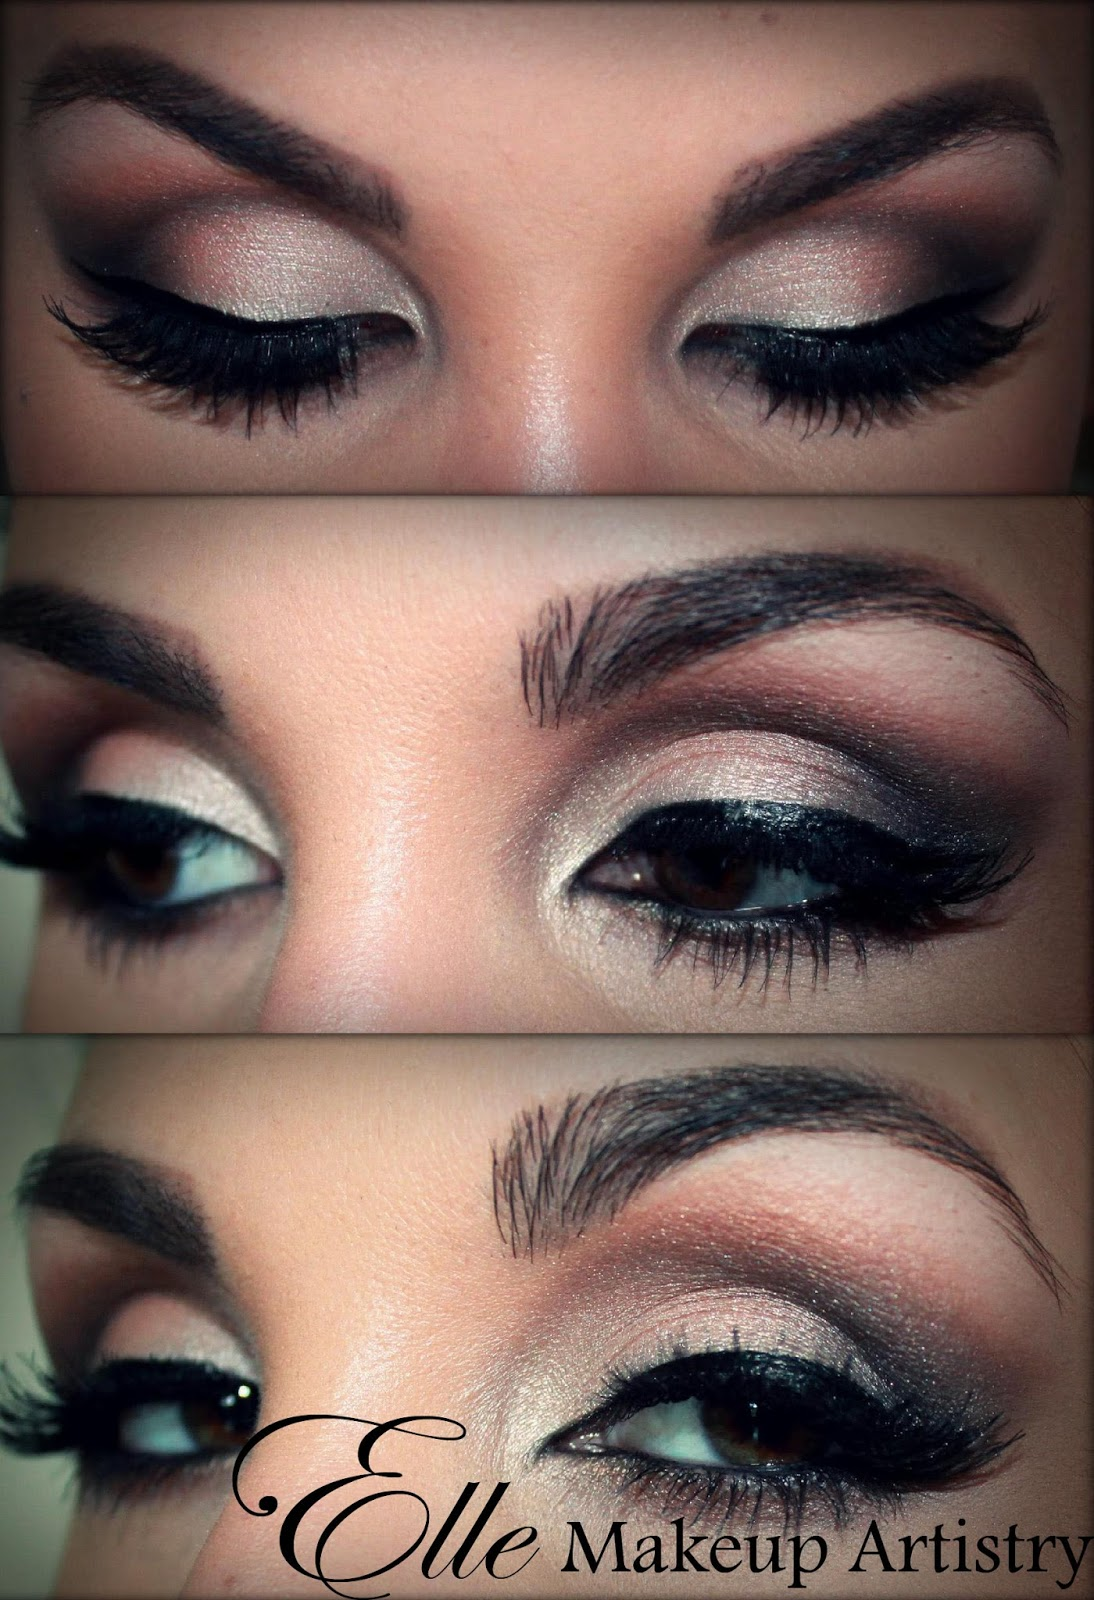 Smokey Eye Makeup: Elle Makeup Artist: Smokey Eyes, Airbrushed Face, Special